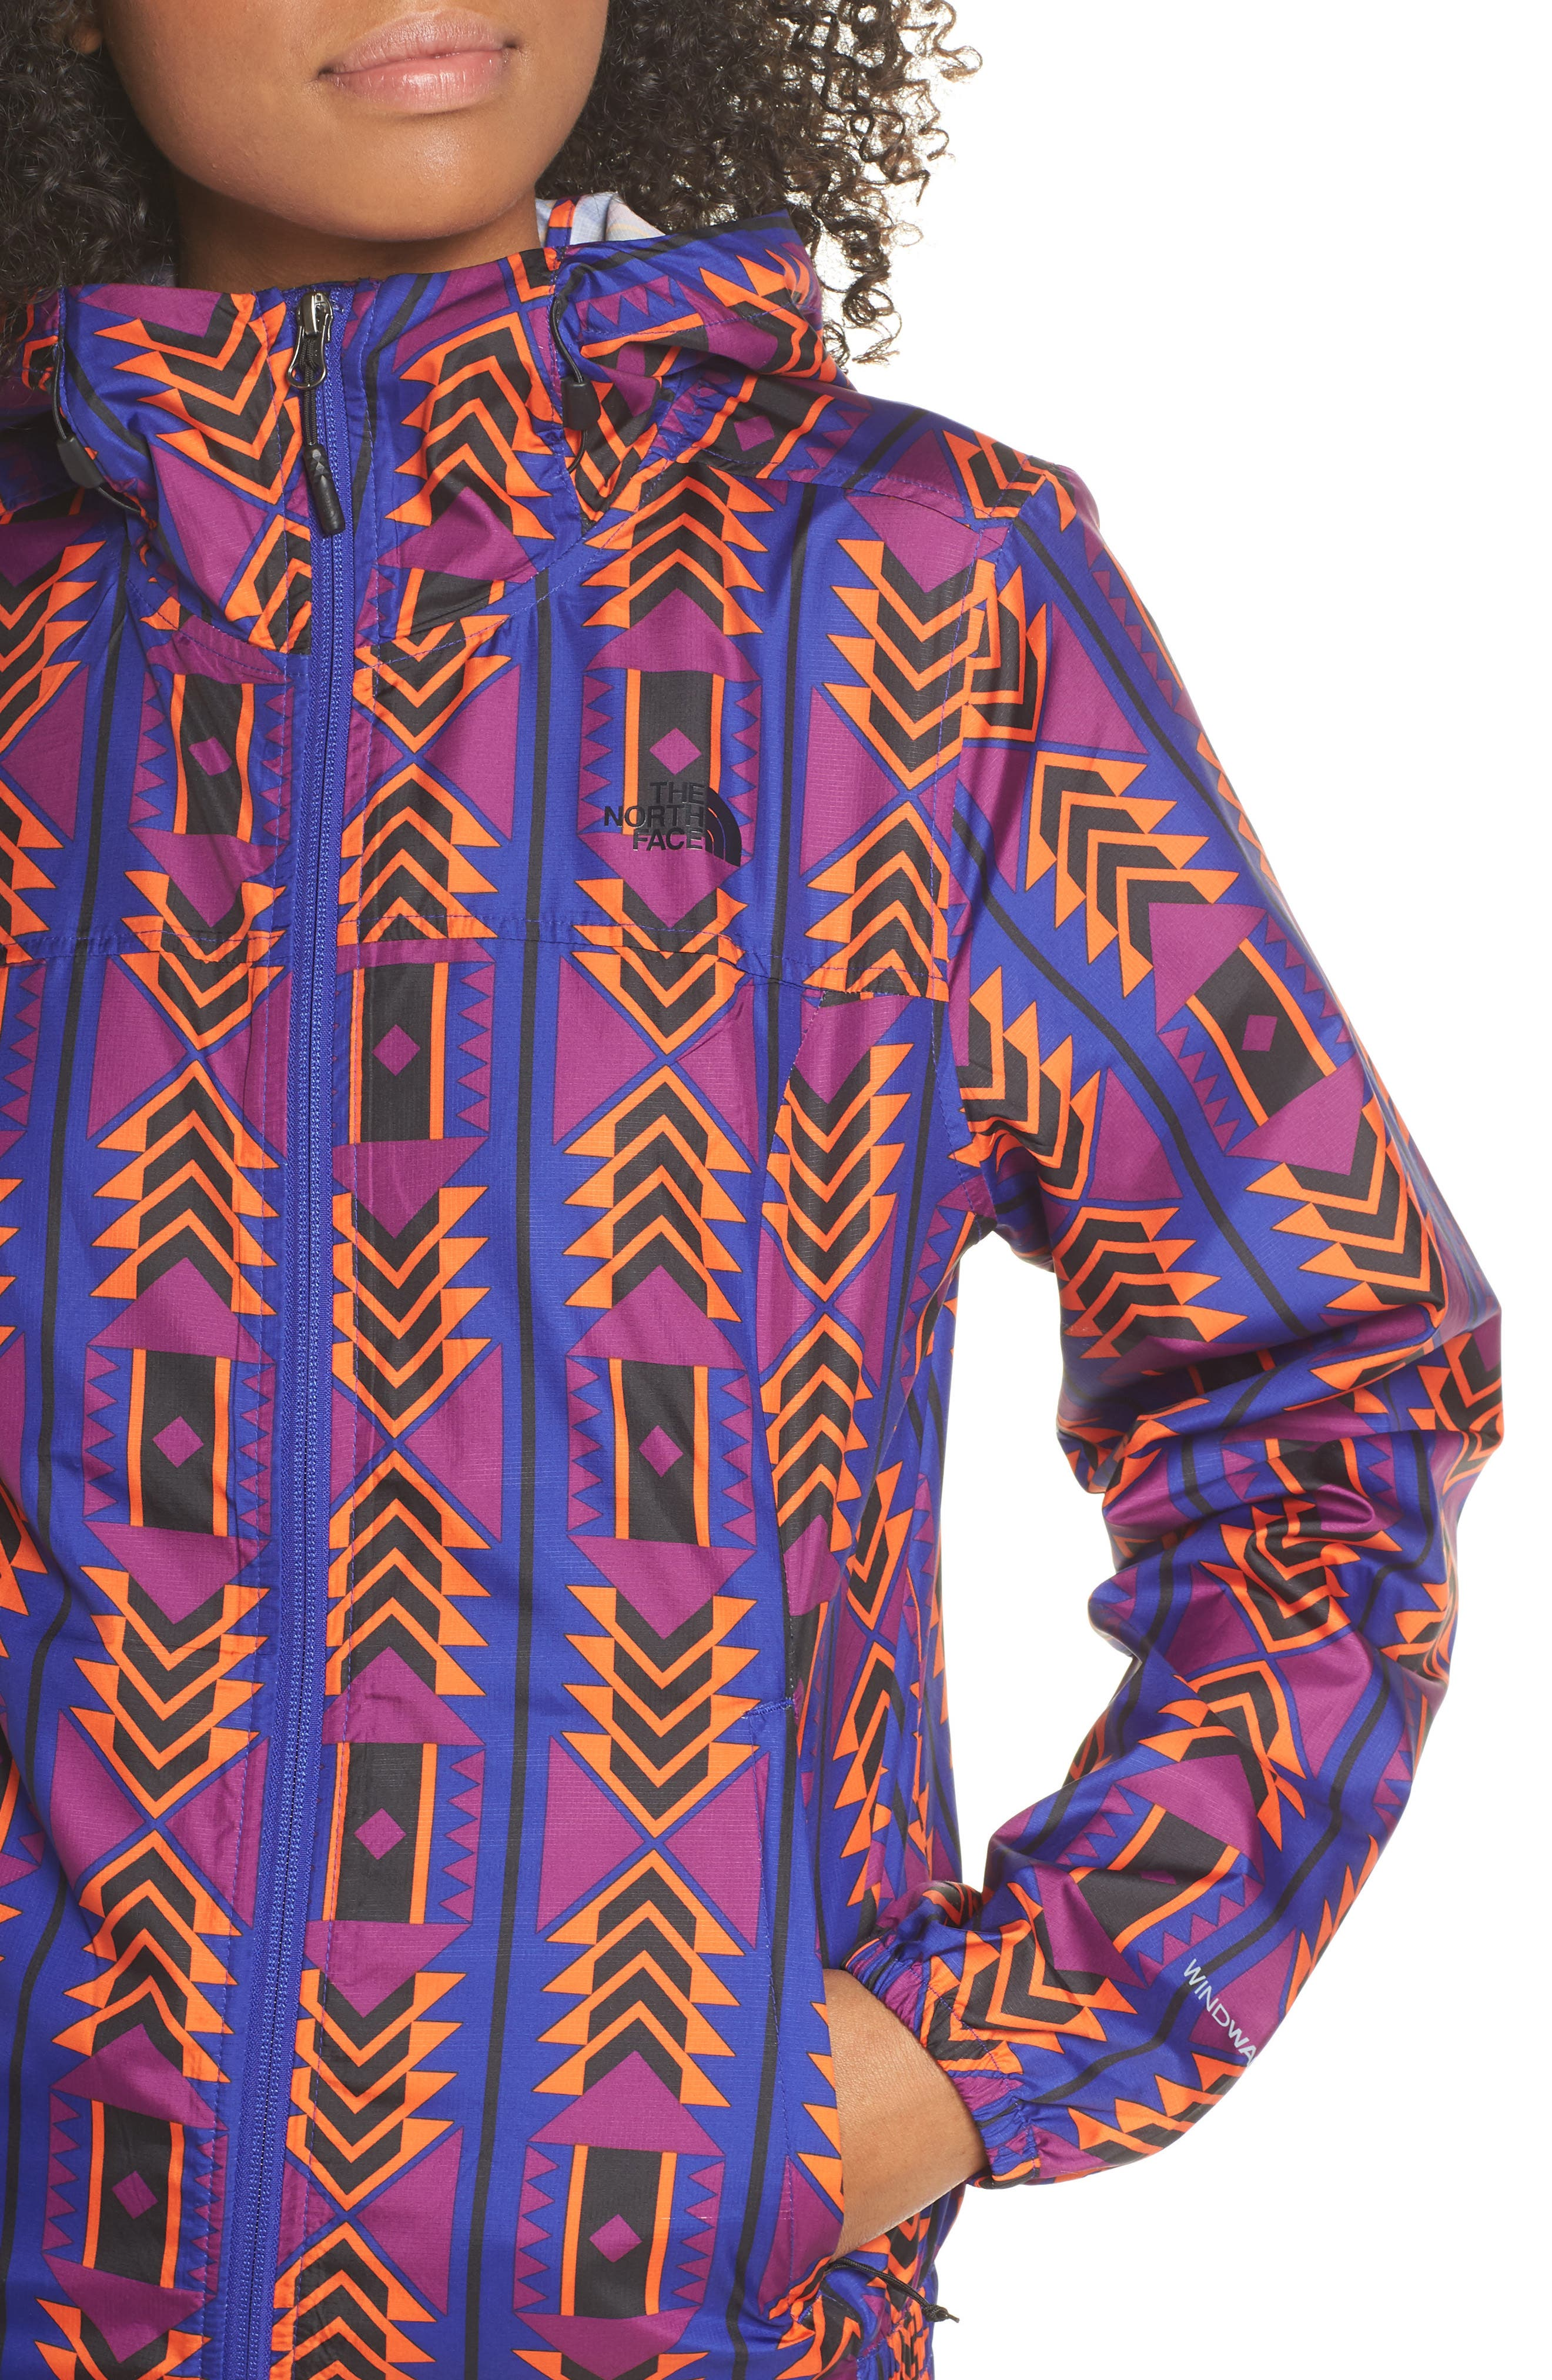 THE NORTH FACE, Print Cyclone 3.0 WindWall<sup>®</sup> Jacket, Alternate thumbnail 5, color, AZTEC BLUE 1992 RAGE PRINT